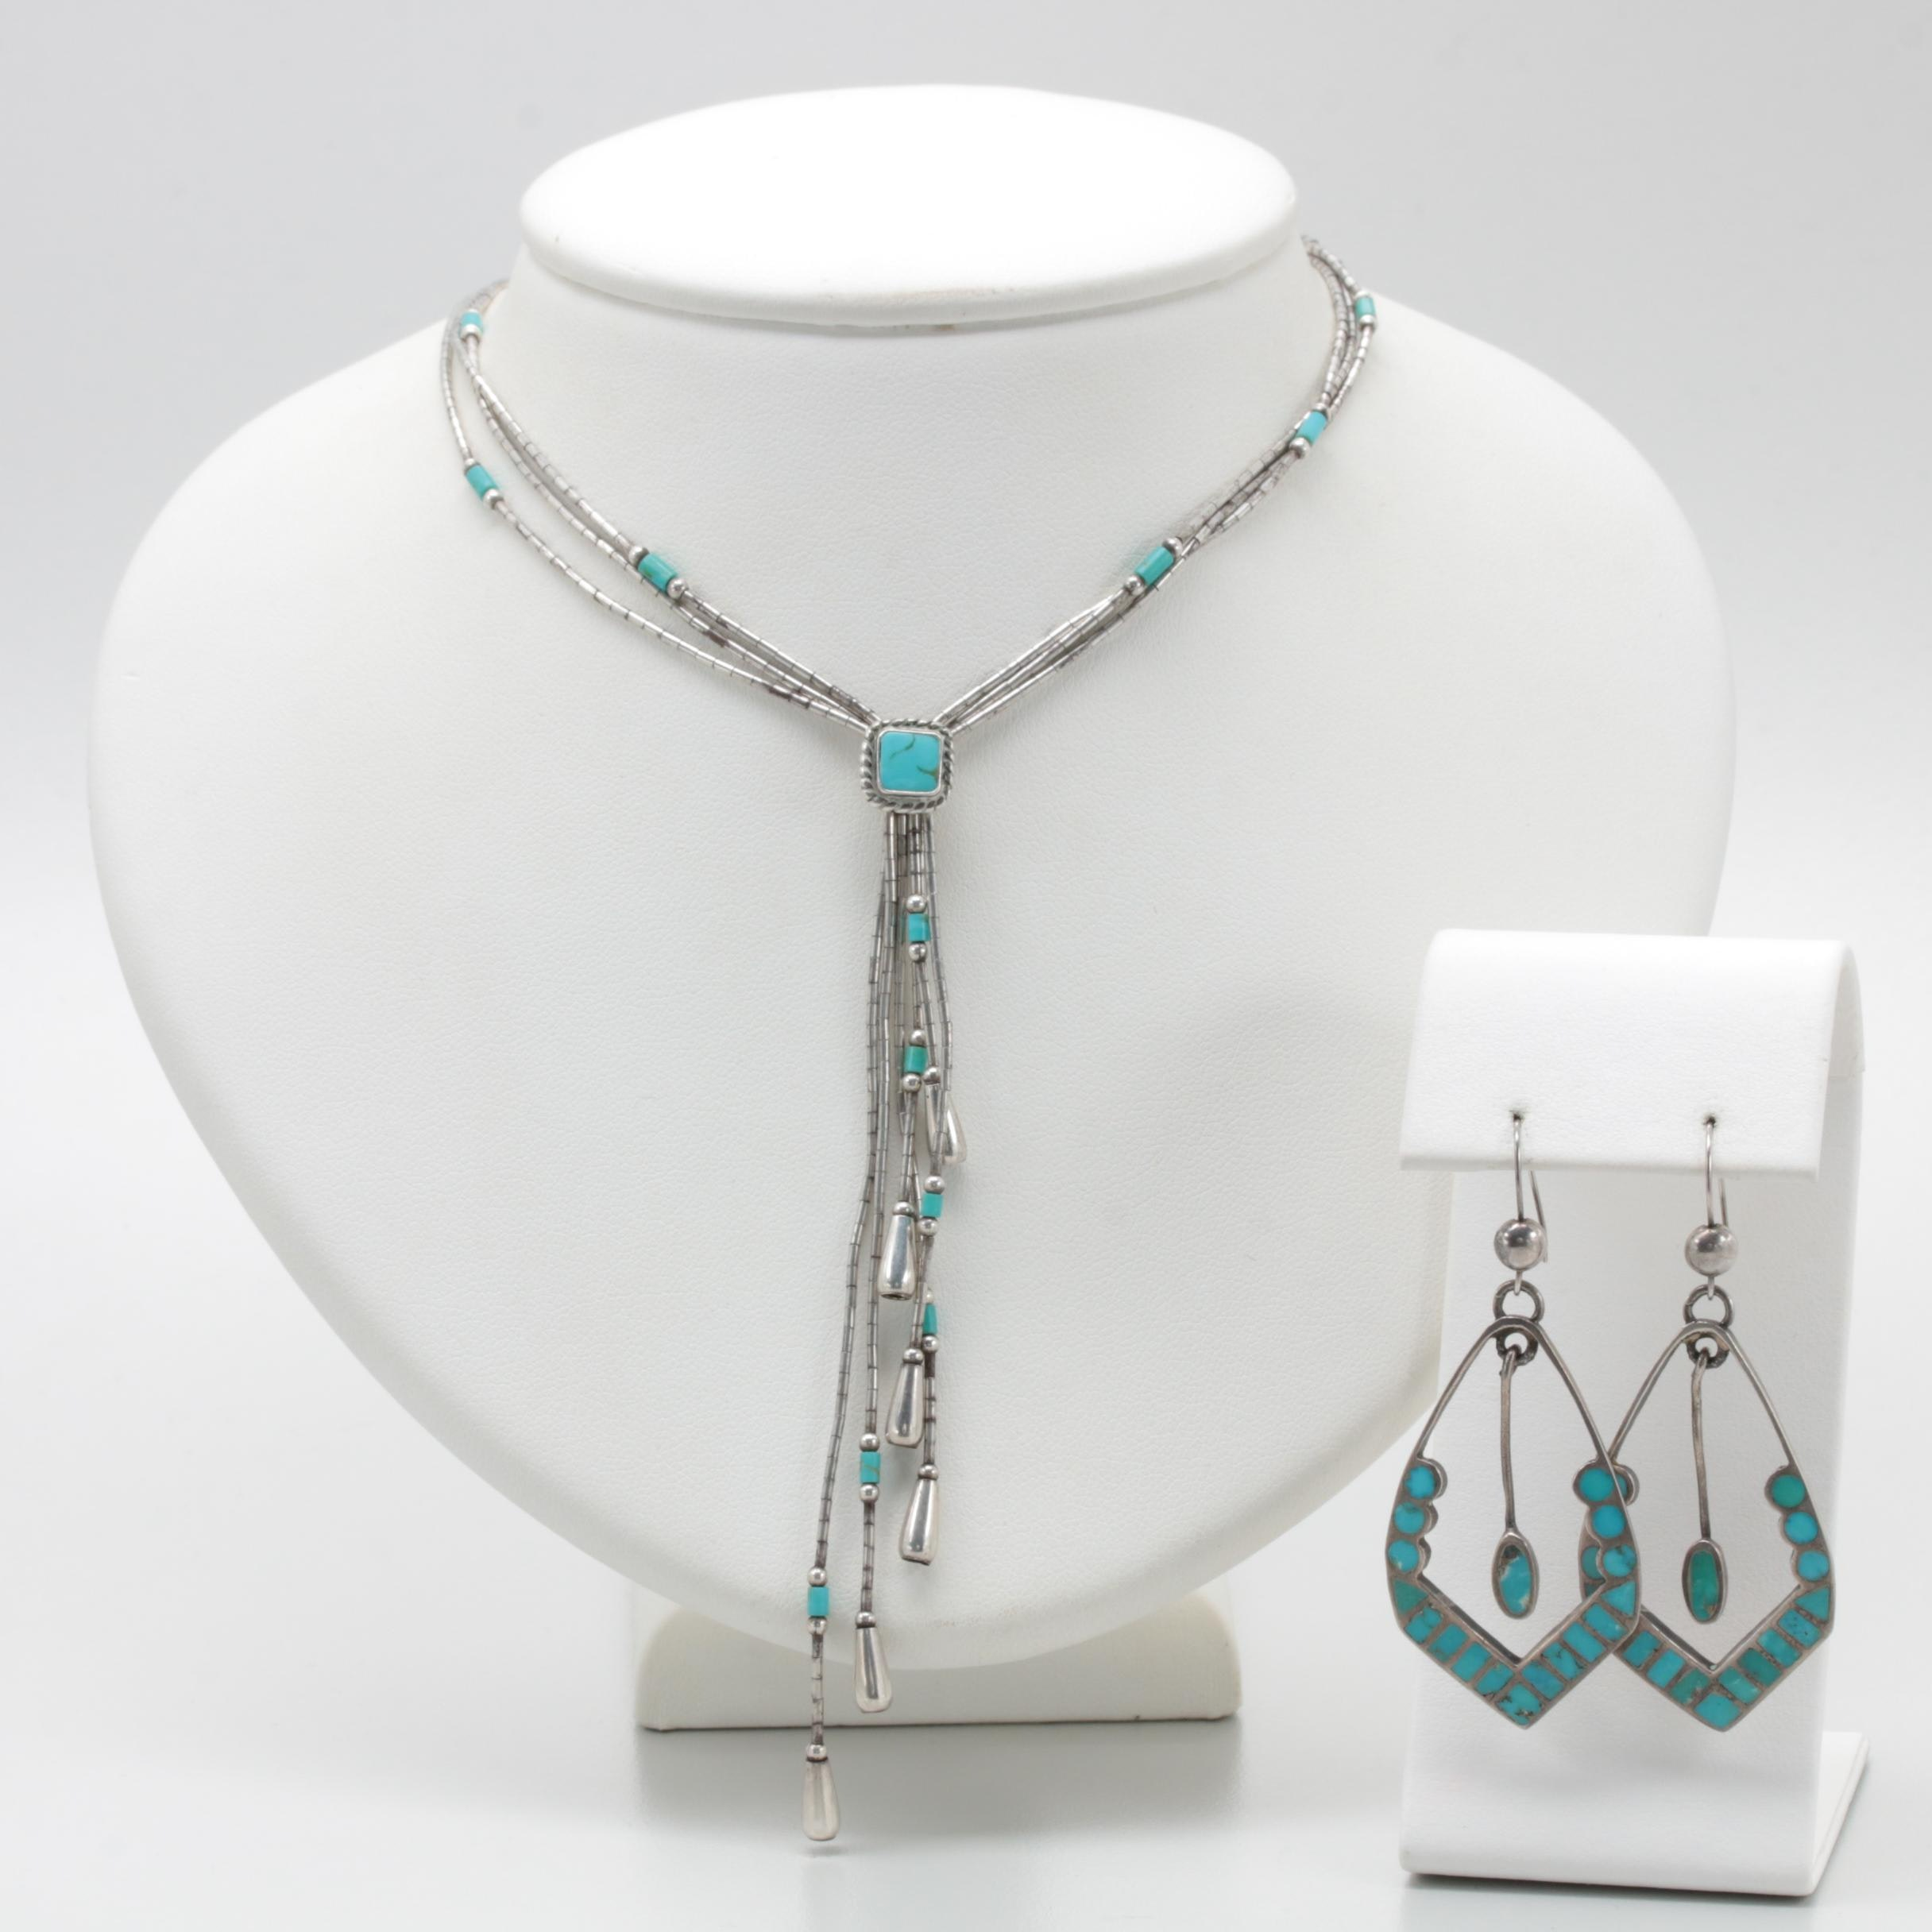 Sterling Silver Howlite and Turquoise Necklace and Earrings